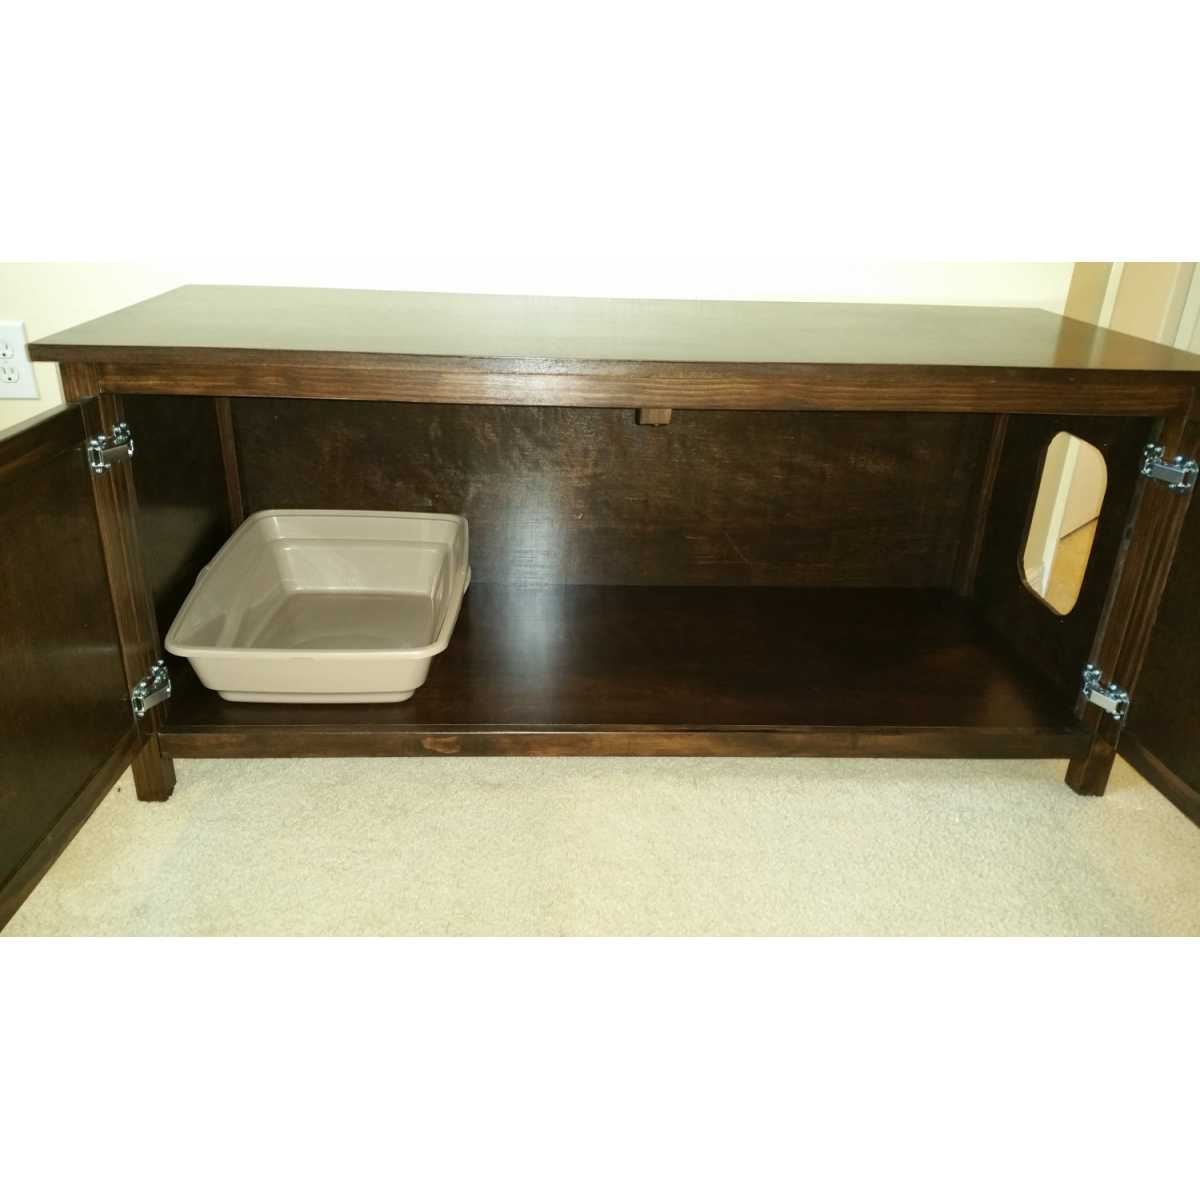 ... Long And Low Cat Litter Box Cabinet With Odor Absorbing Light ...